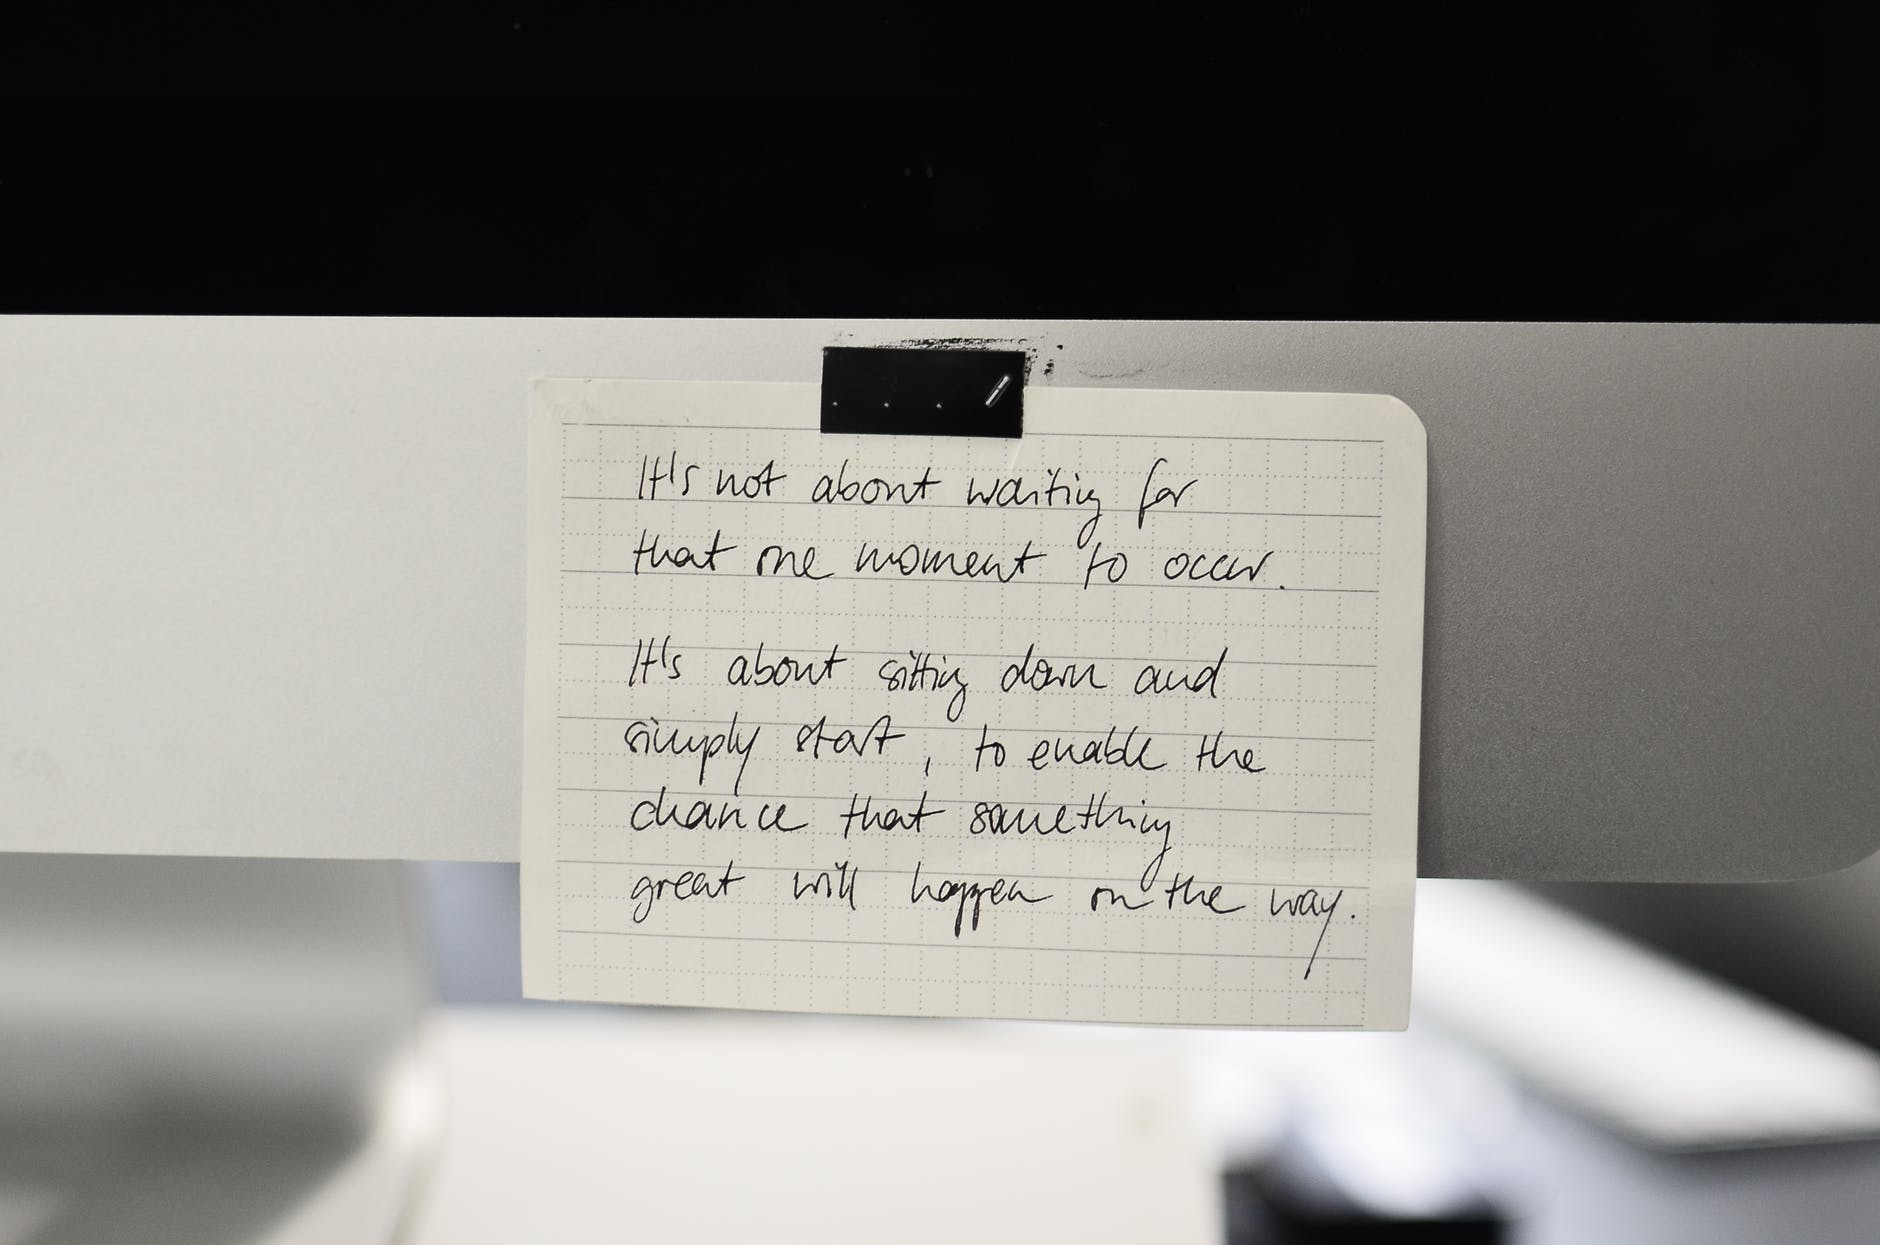 message on paper sheet on light surface